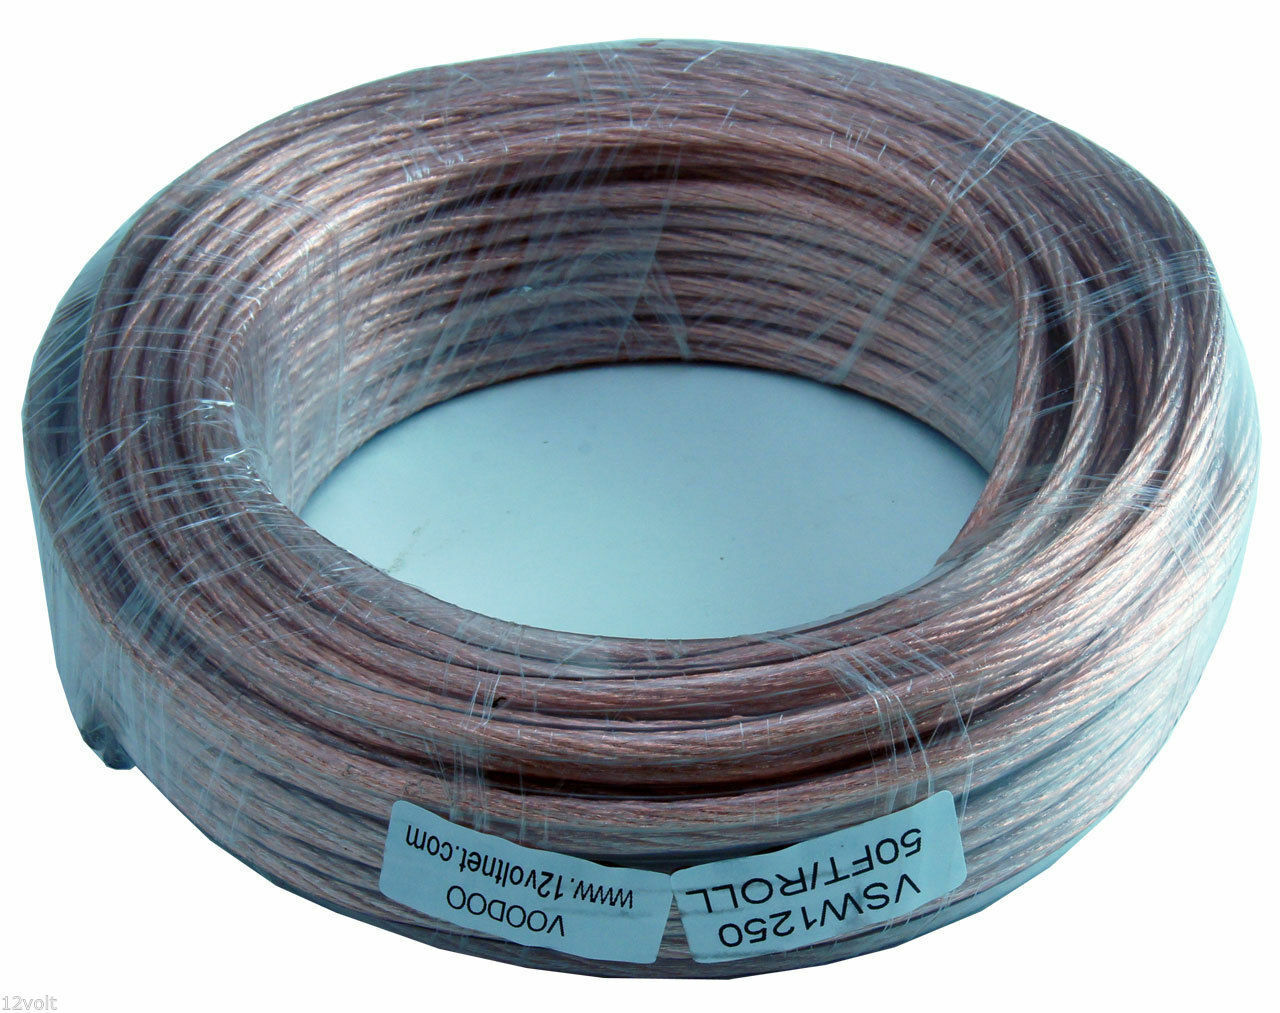 VOODOO CLEAR SPEAKER Wire 12 gauge AWG true american wire gauge spec ...